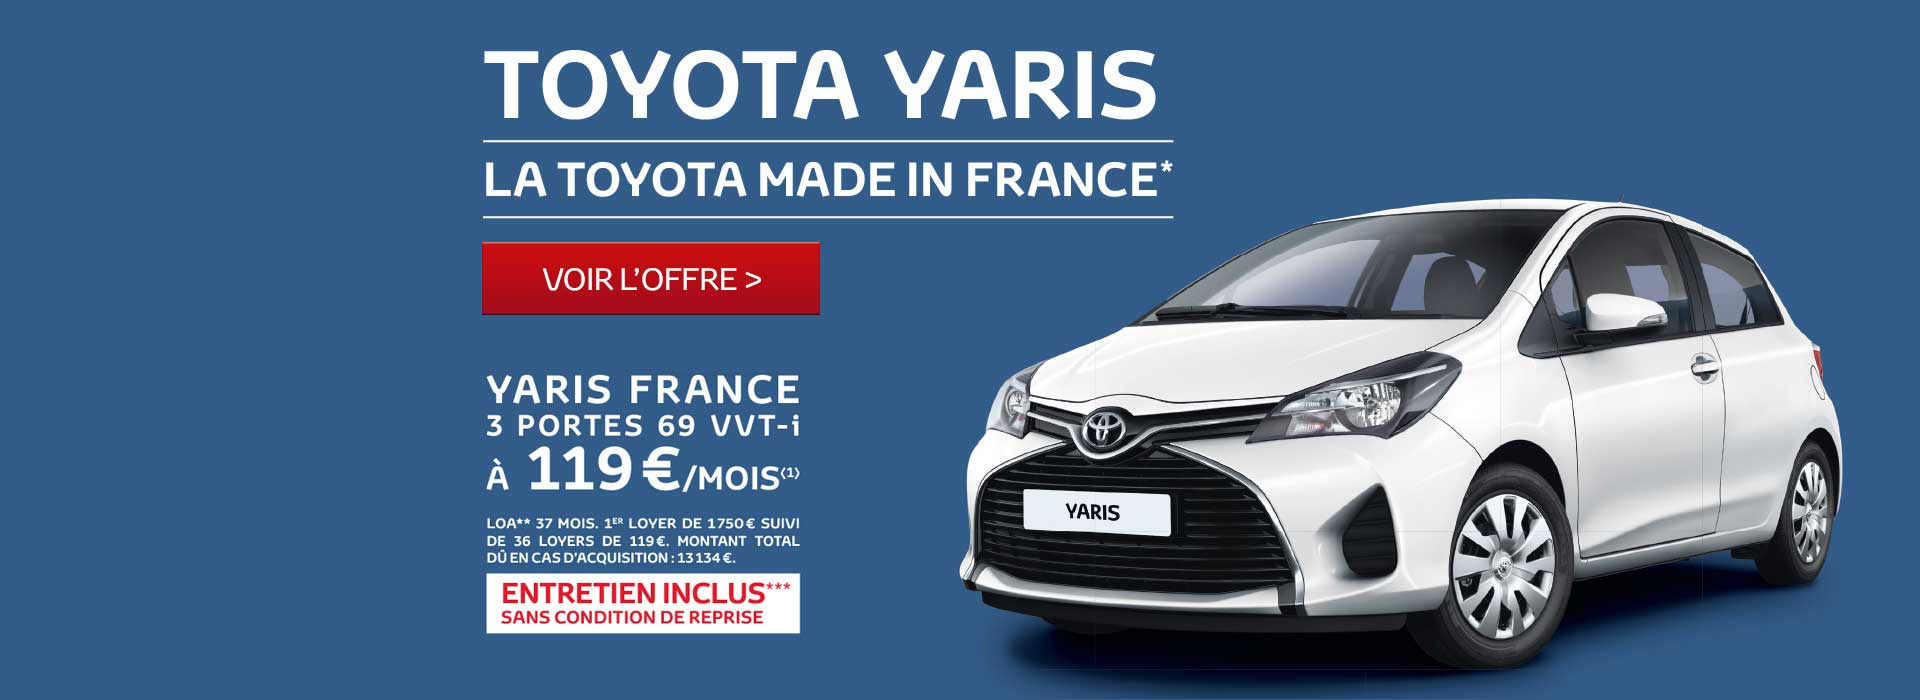 Toyota Yaris France